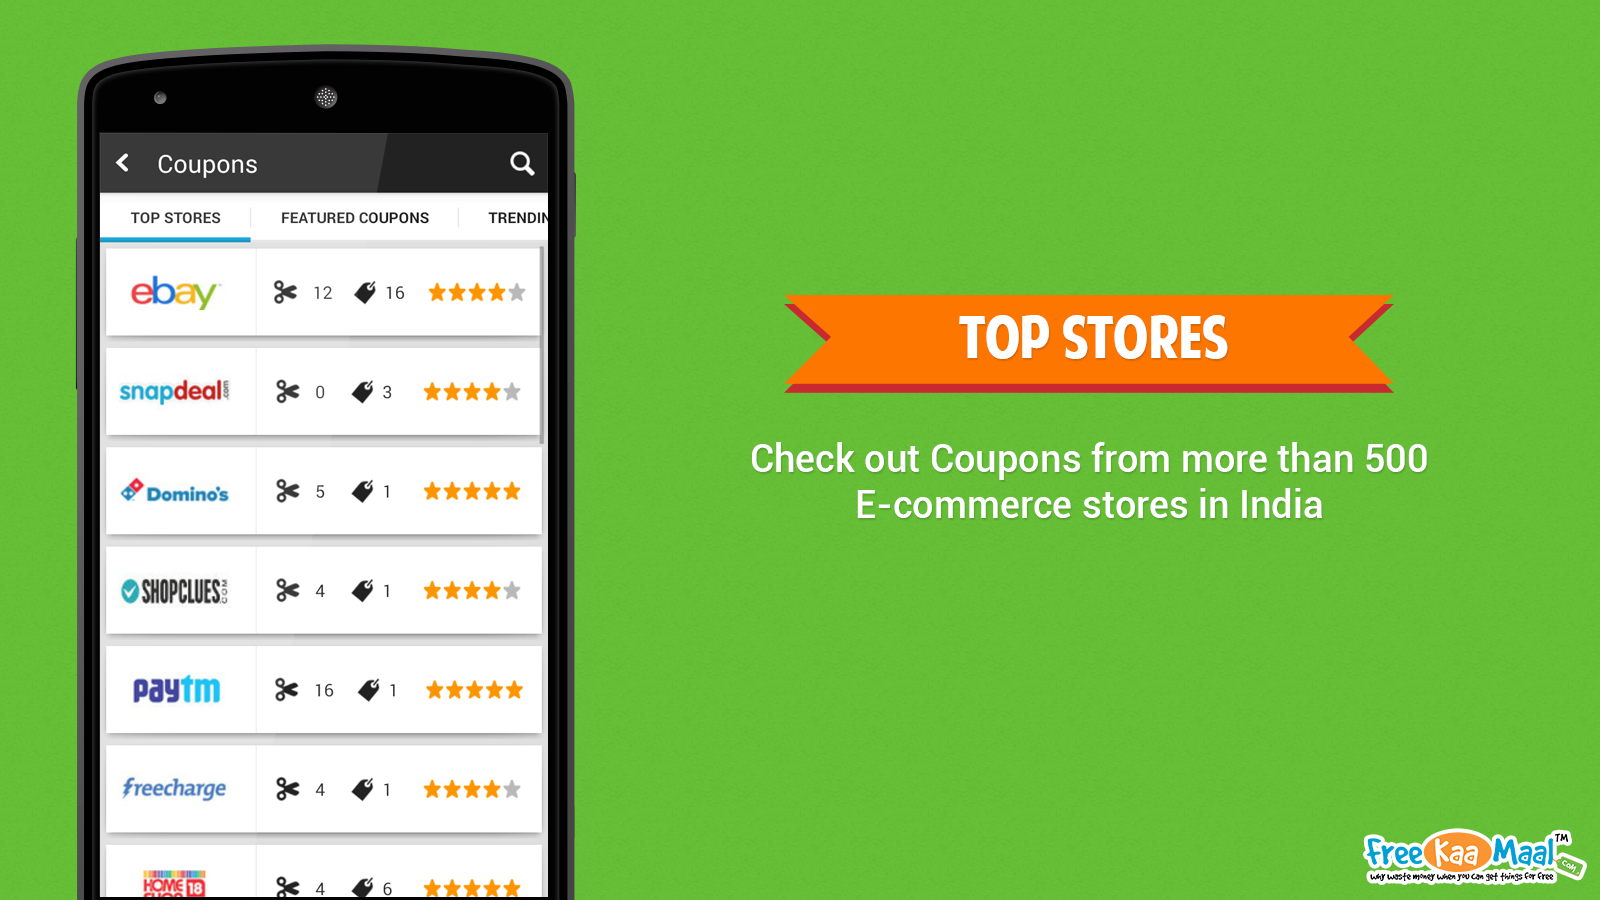 FreeKaaMaal - Deals & Coupons- screenshot